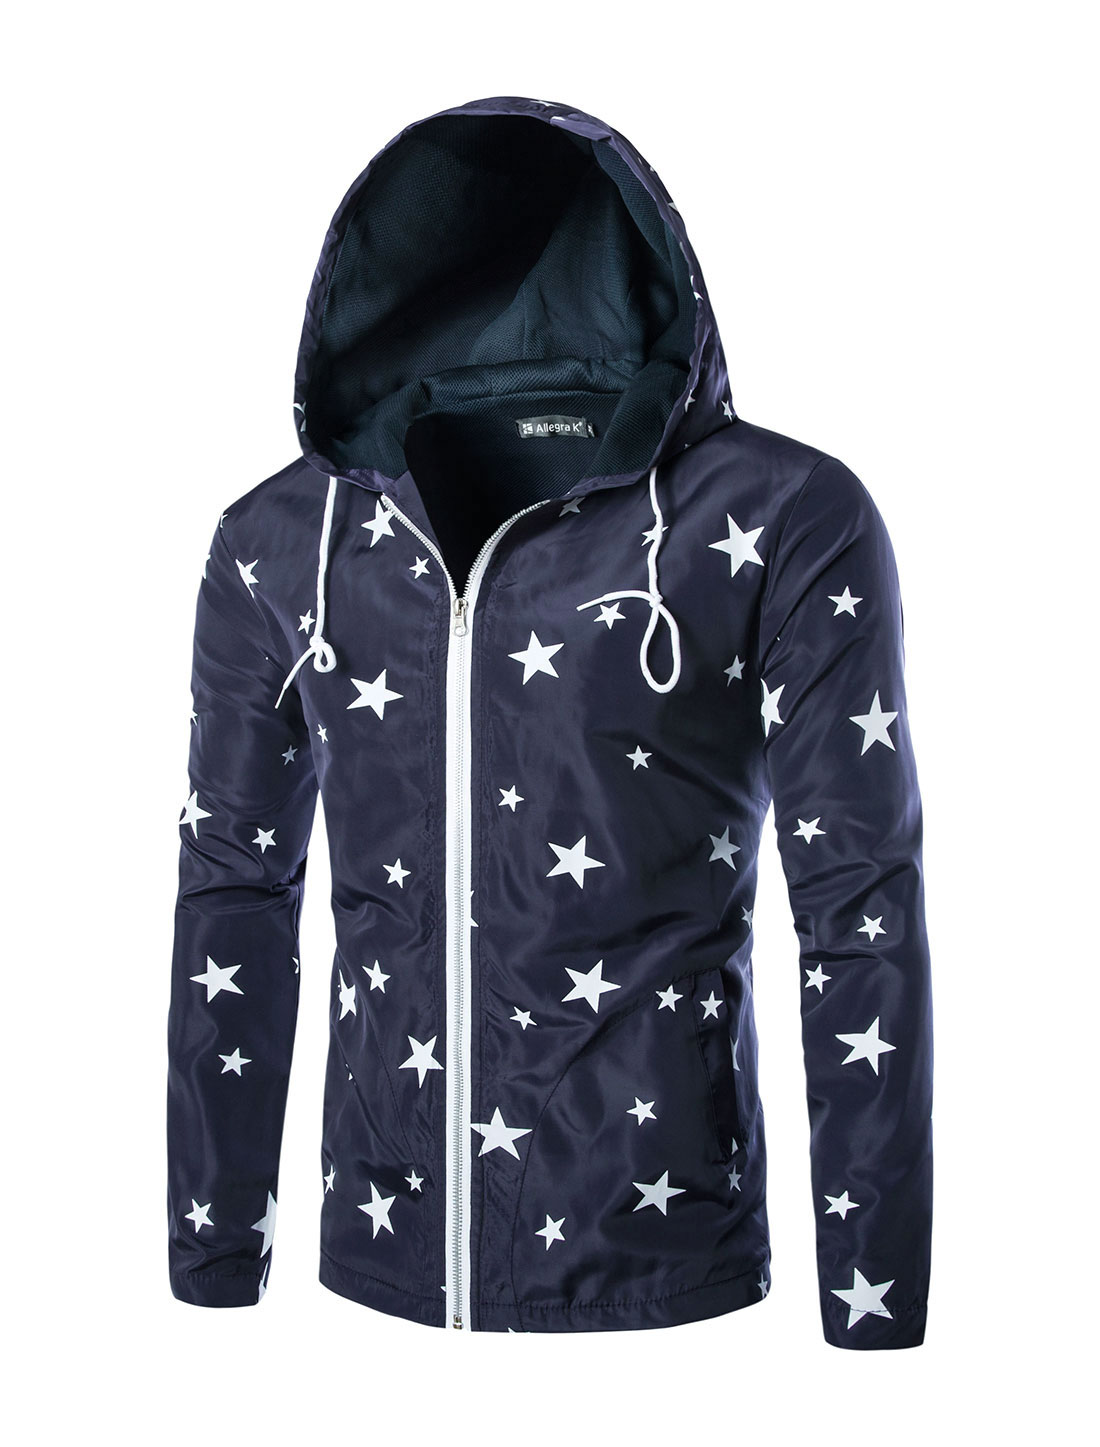 Men Long Sleeve Stars Prints Zipper Front Hoodie Jacket Navy Blue M